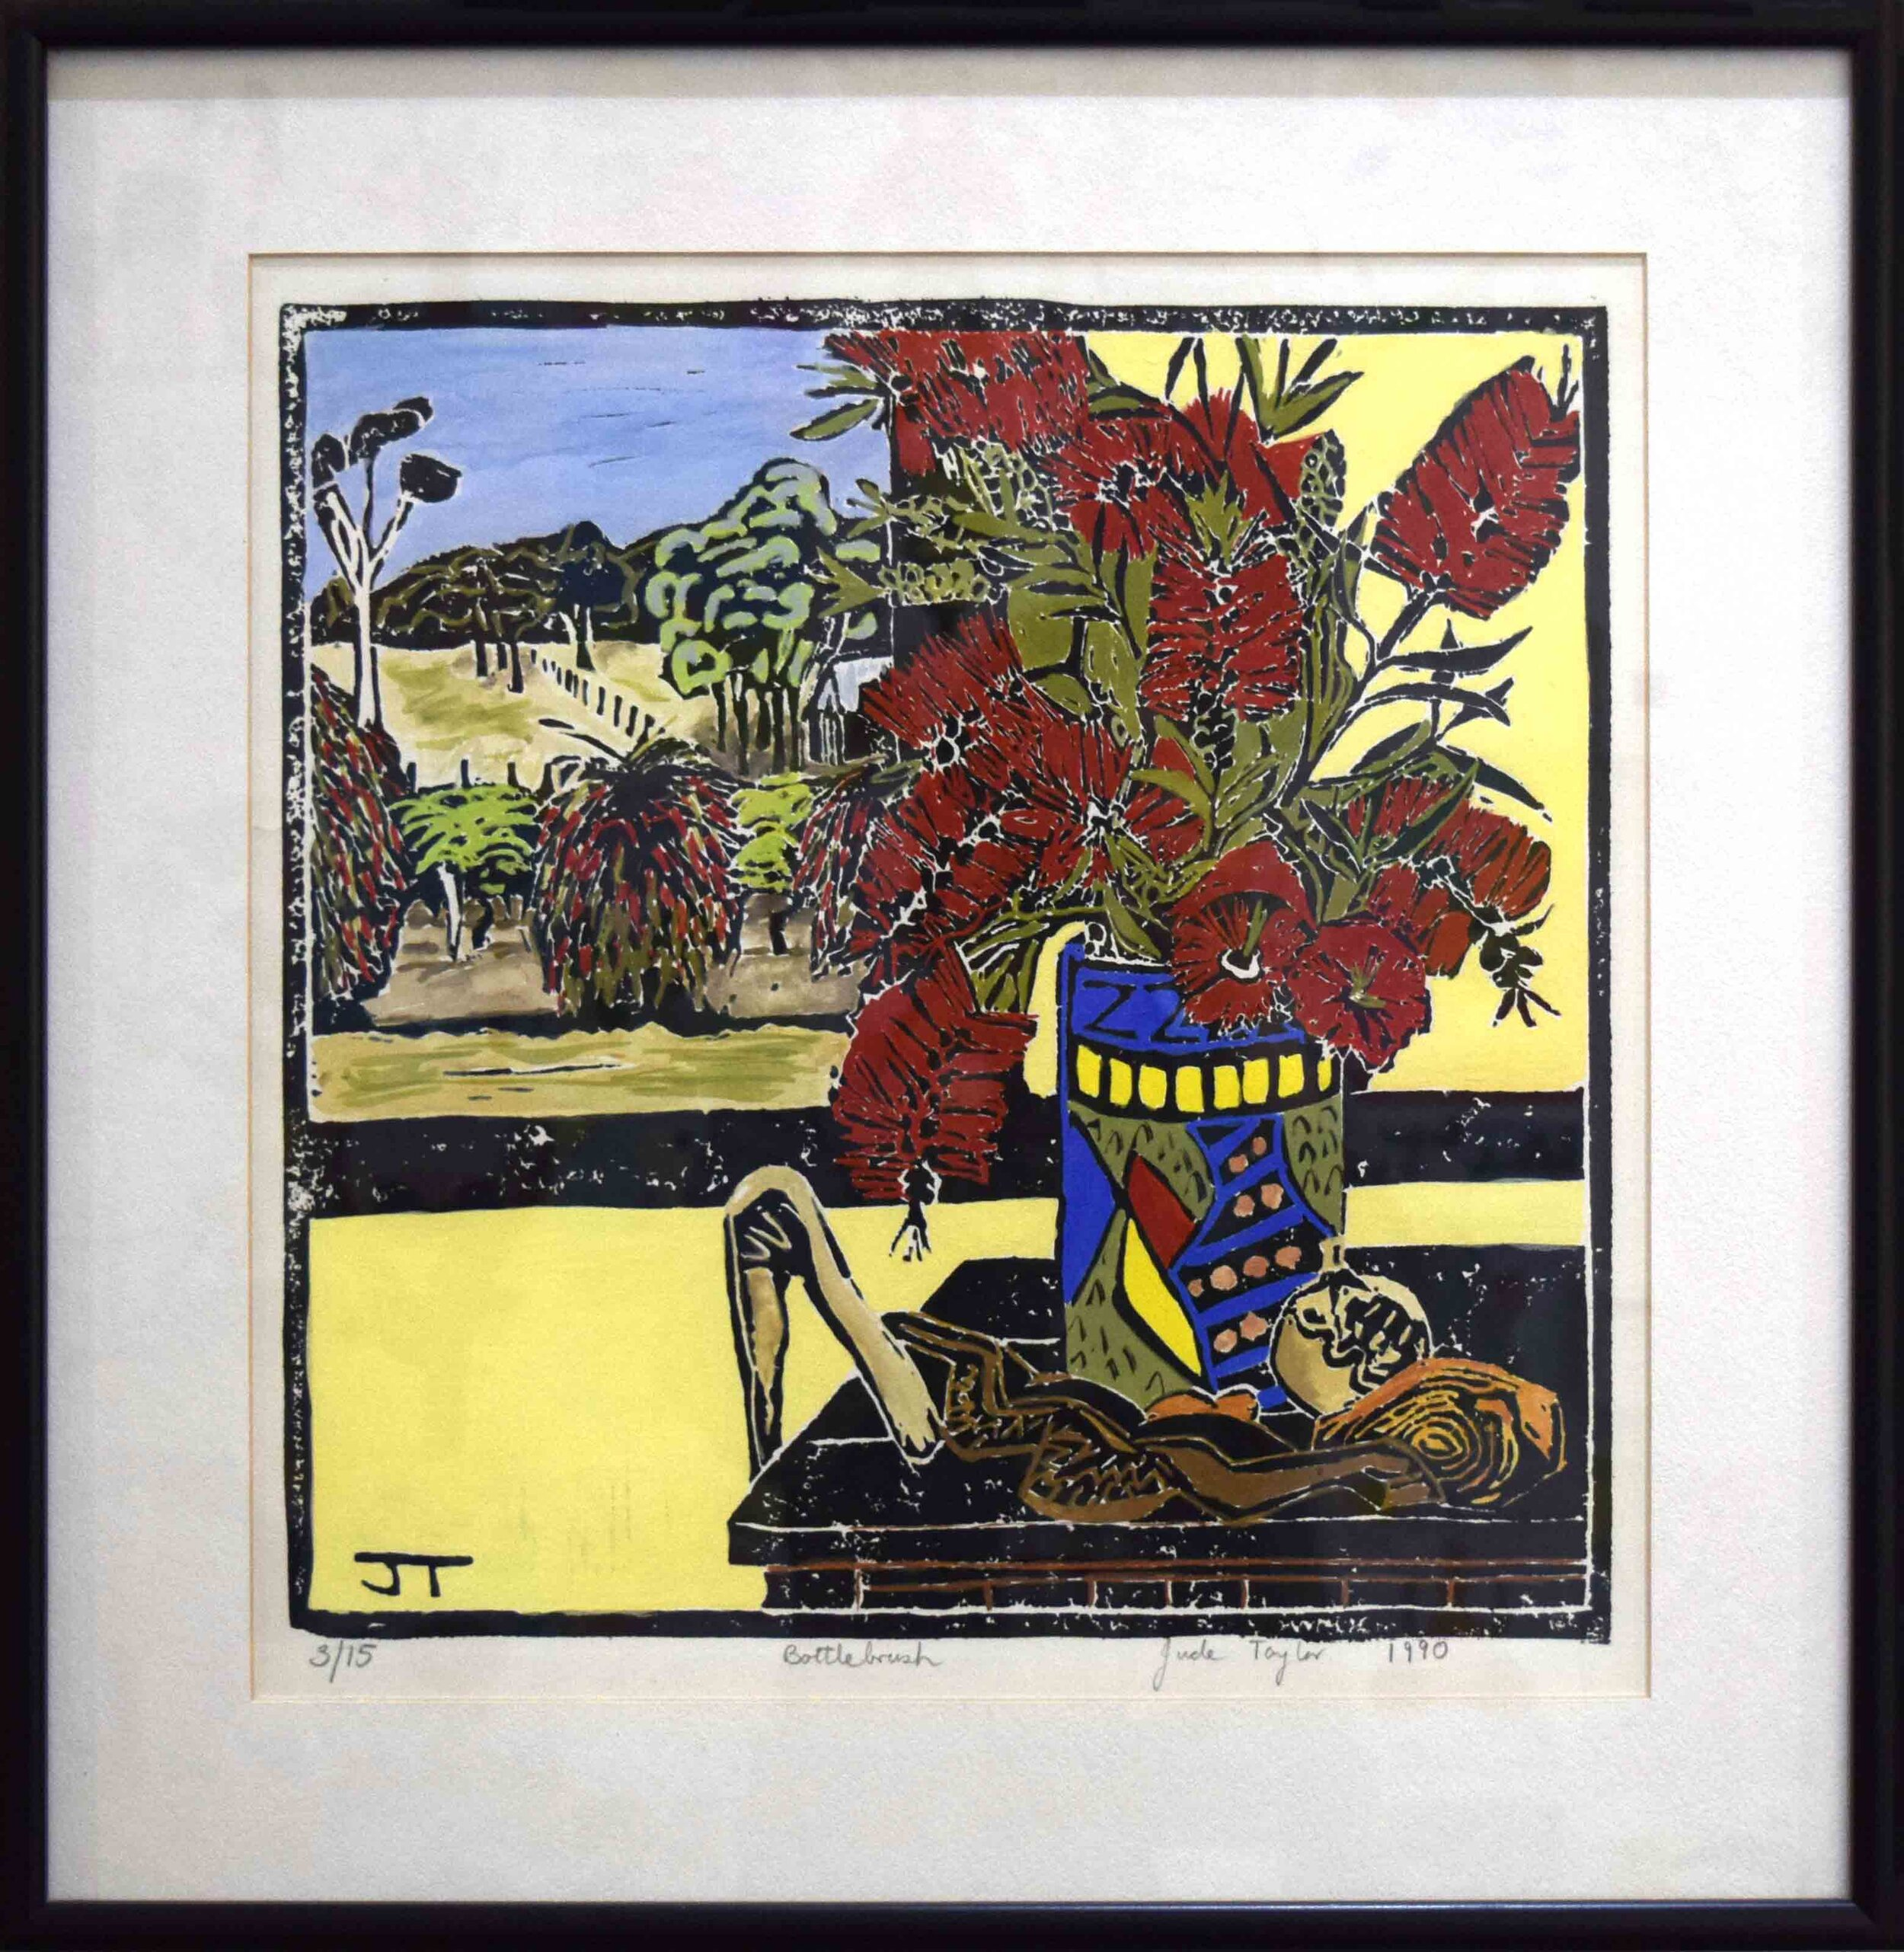 Jude Taylor, Bottlebrush, 1991, hand coloured linocut print on paper, edition 3 or 15, 335 x 340 mm.